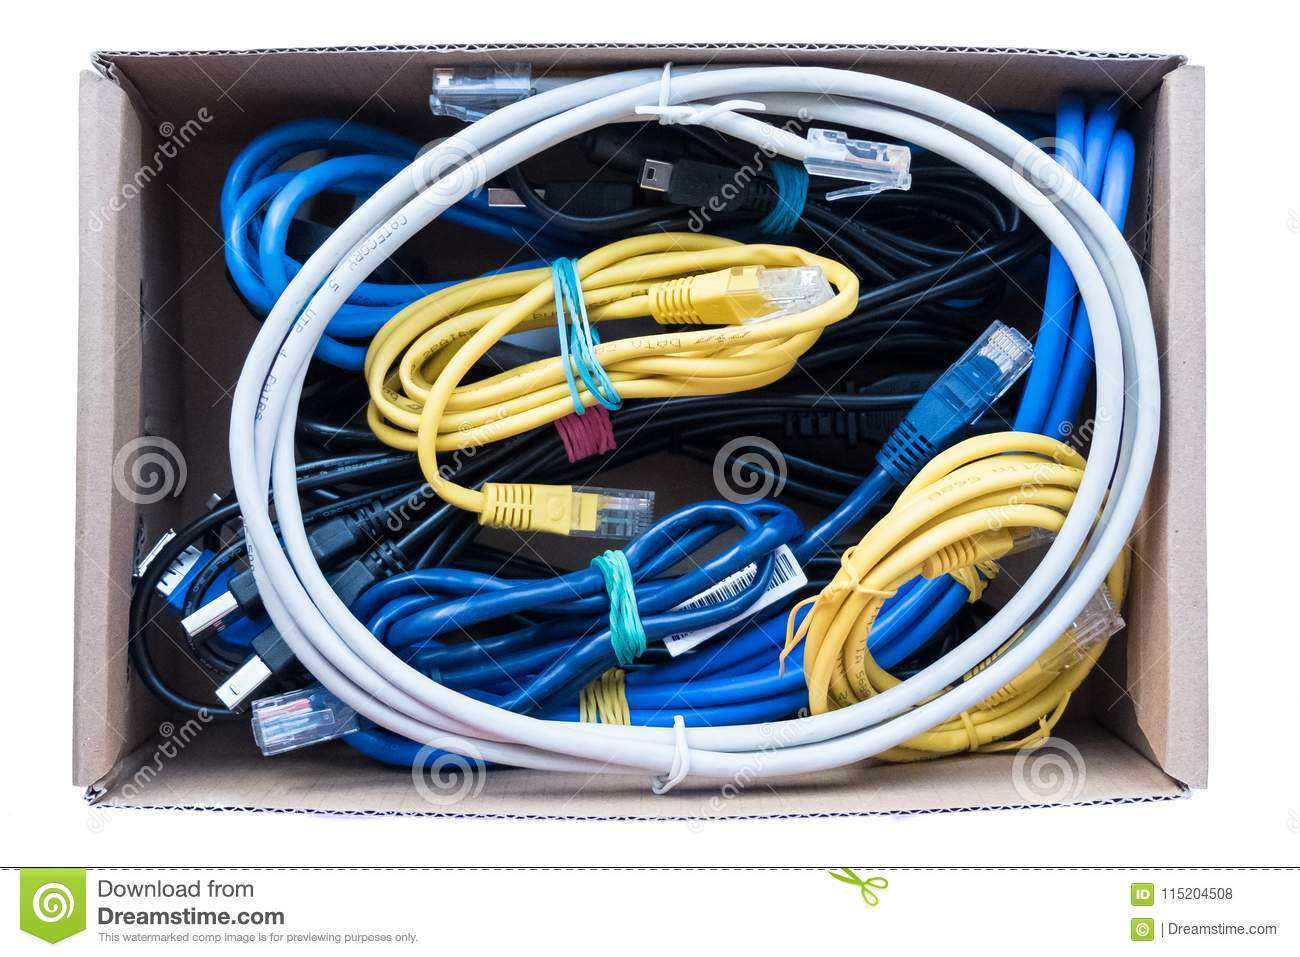 Wires, cords and cables are fixed in a box